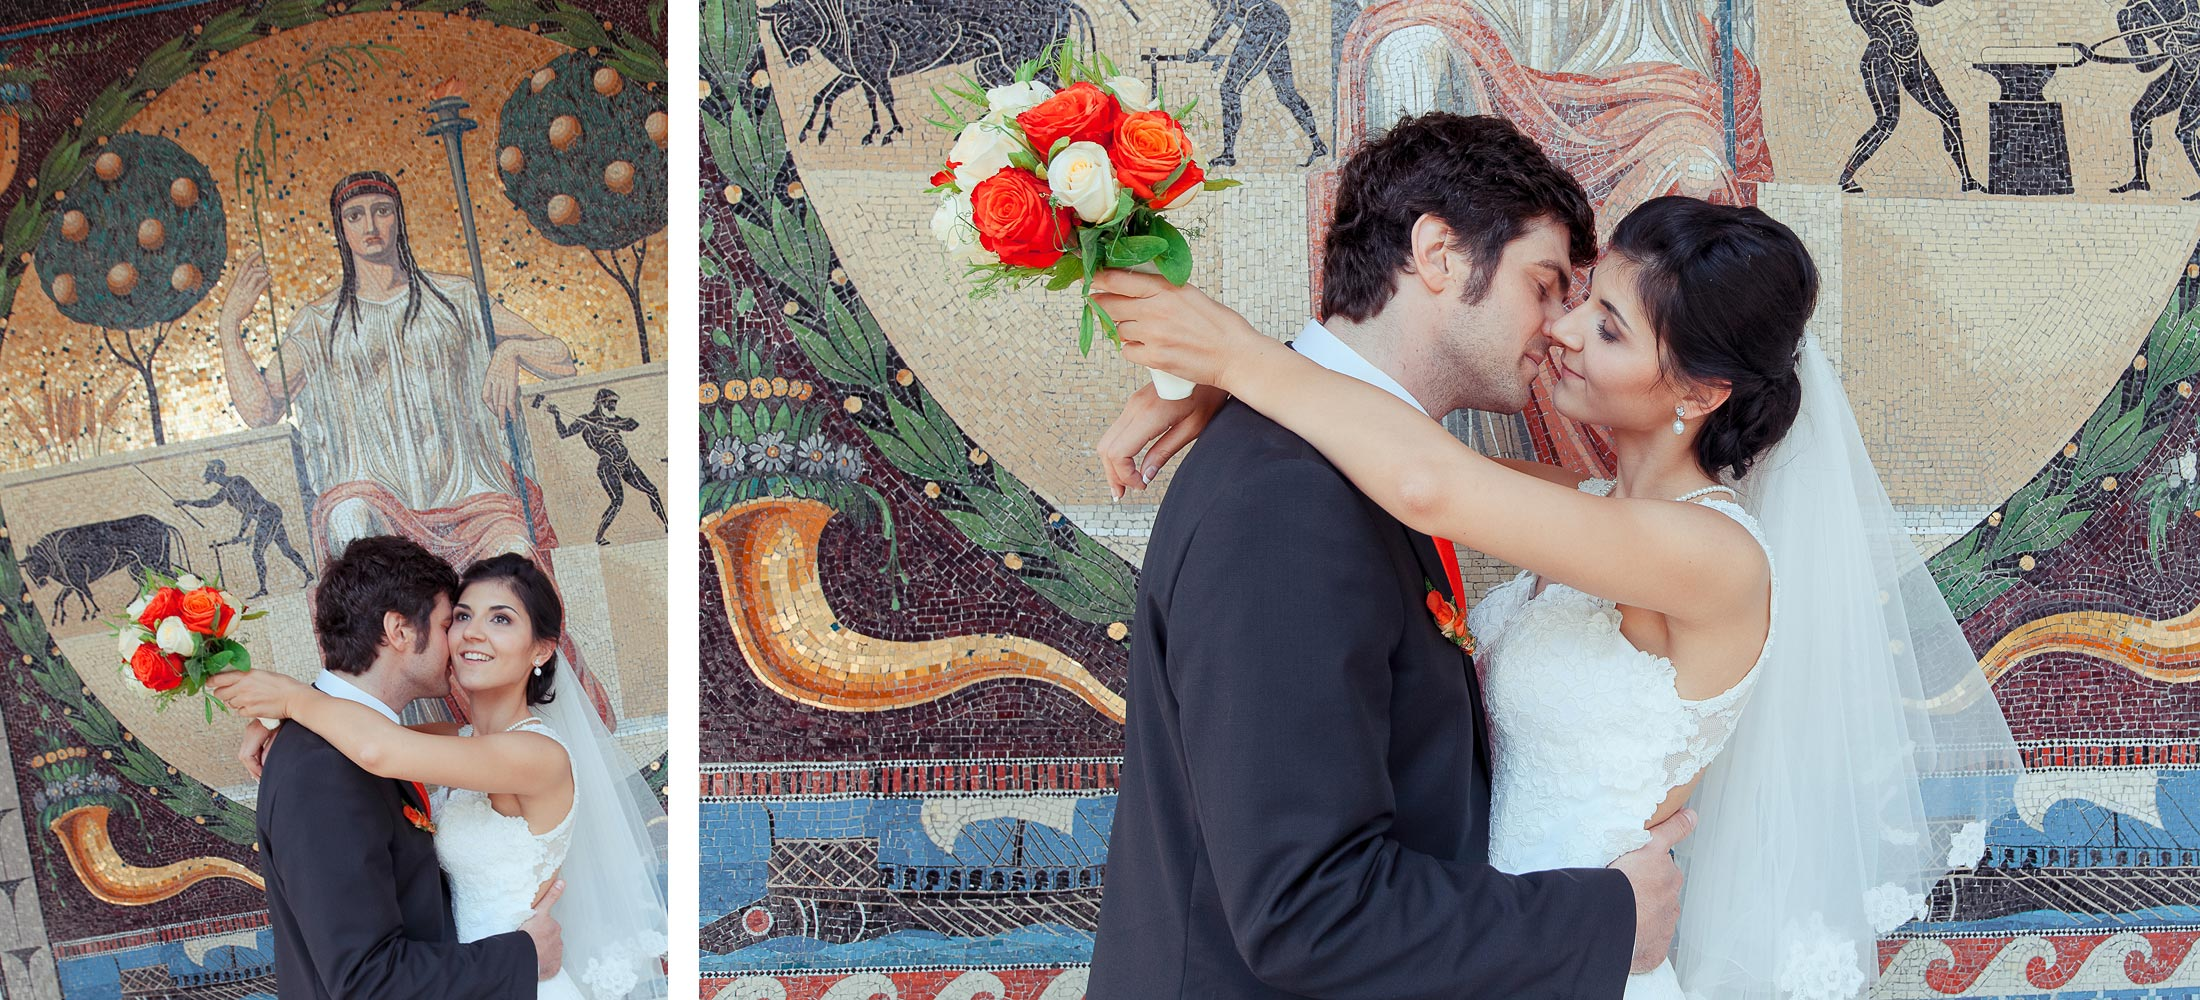 wedding photographer packages